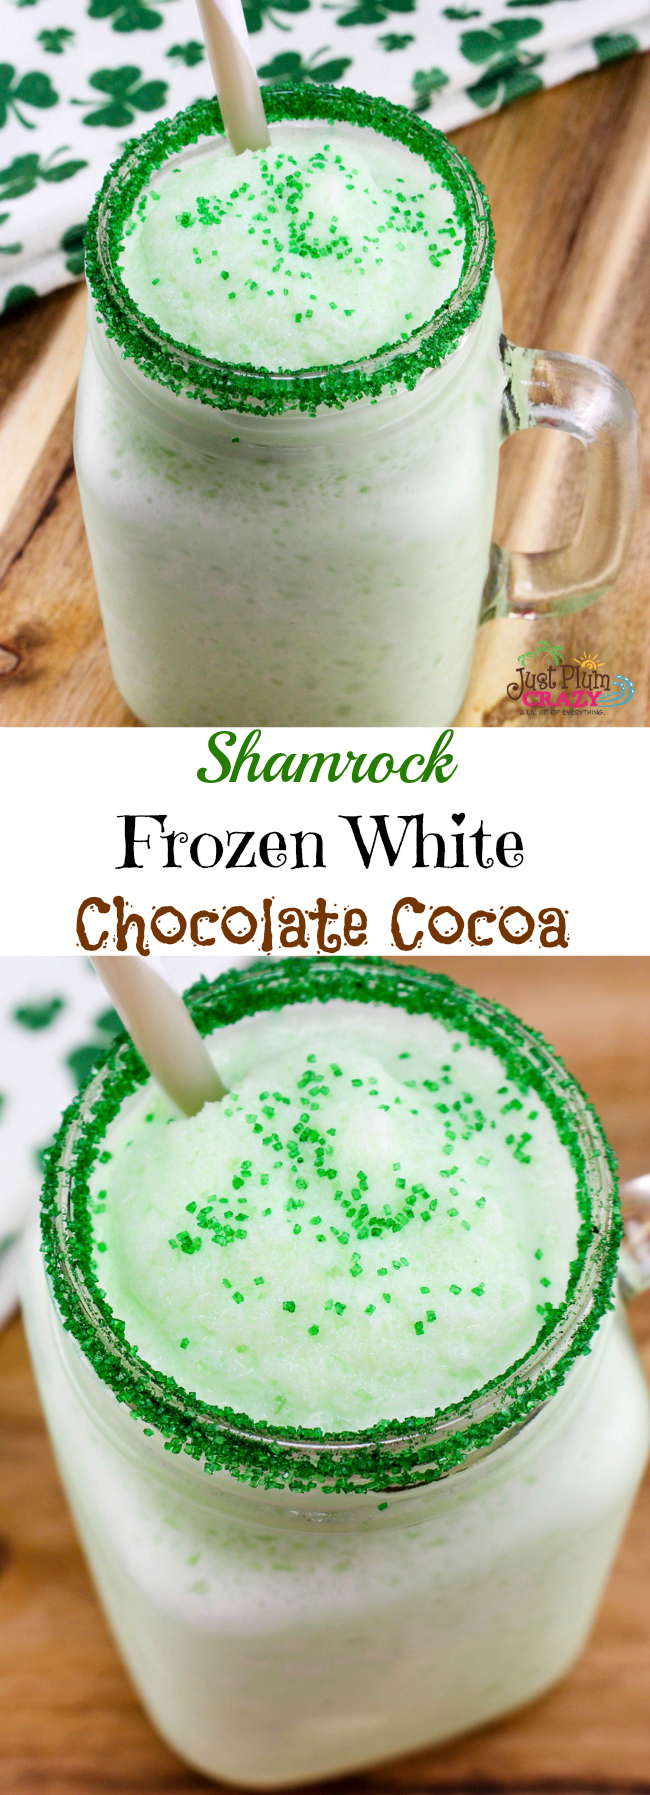 With all the St. Patrick's Day goodies that we've been sharing, I think it's time for a beverage like this Shamrock Frozen White Chocolate Cocoa Recipe.